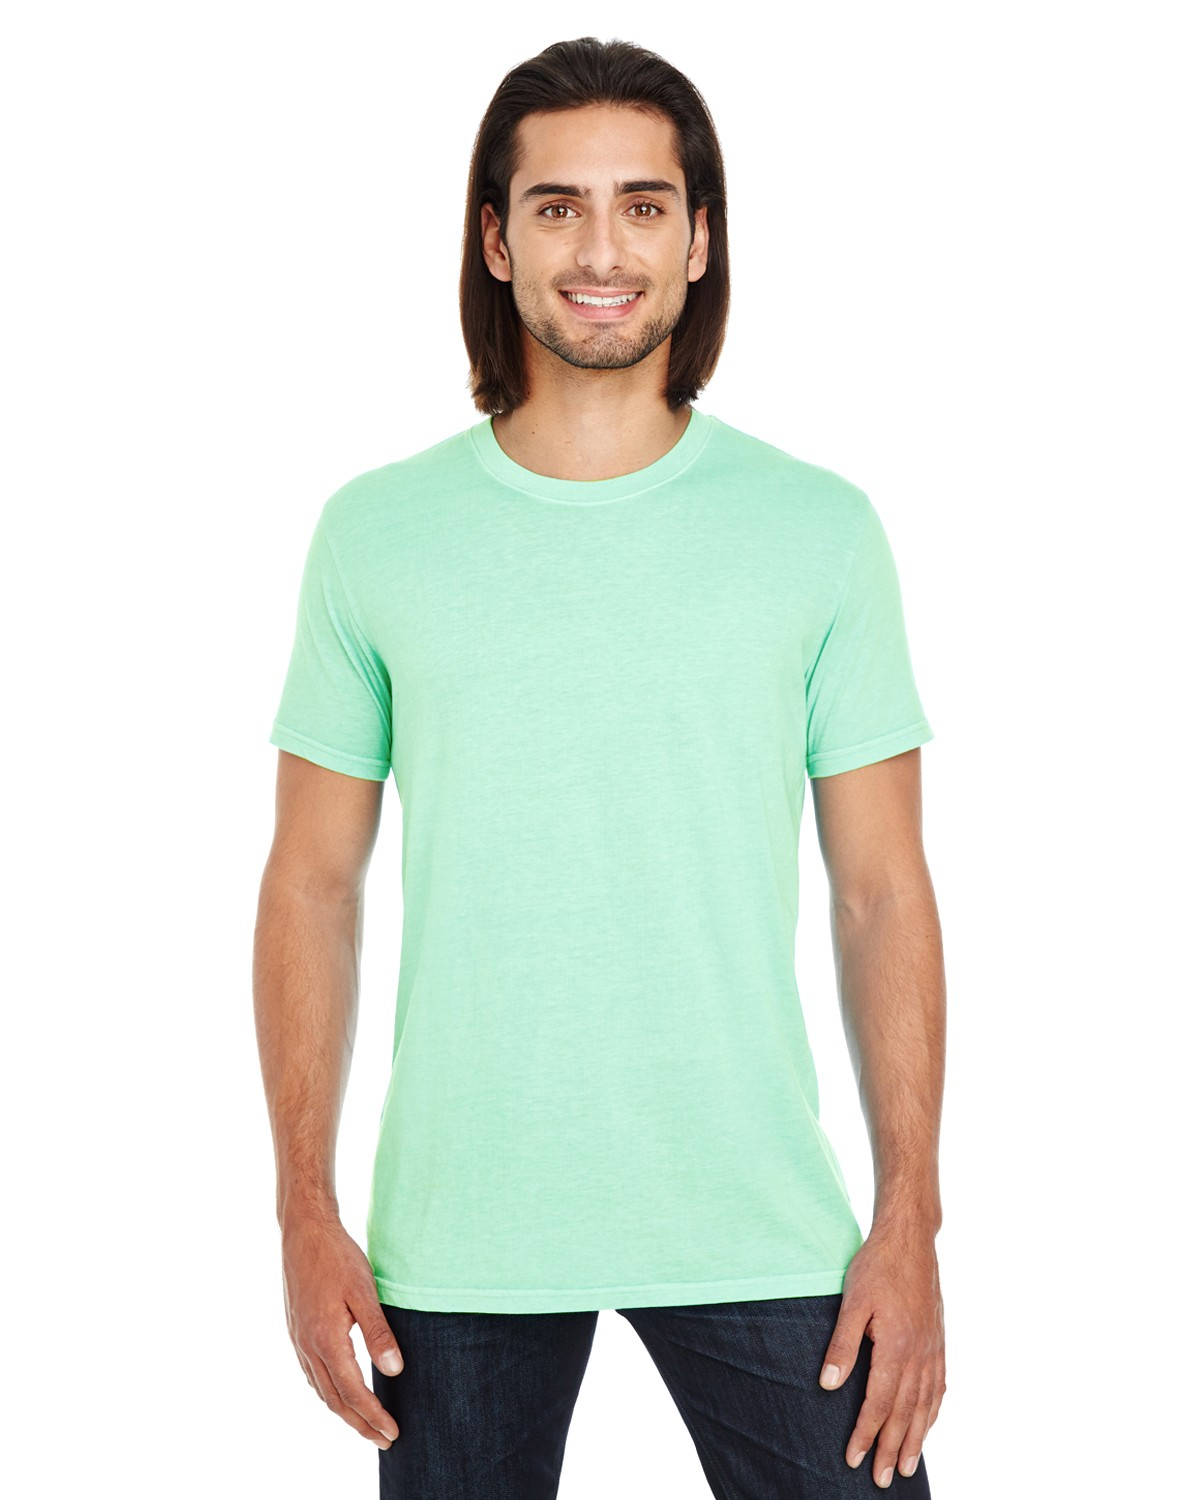 130A Threadfast Apparel MINT